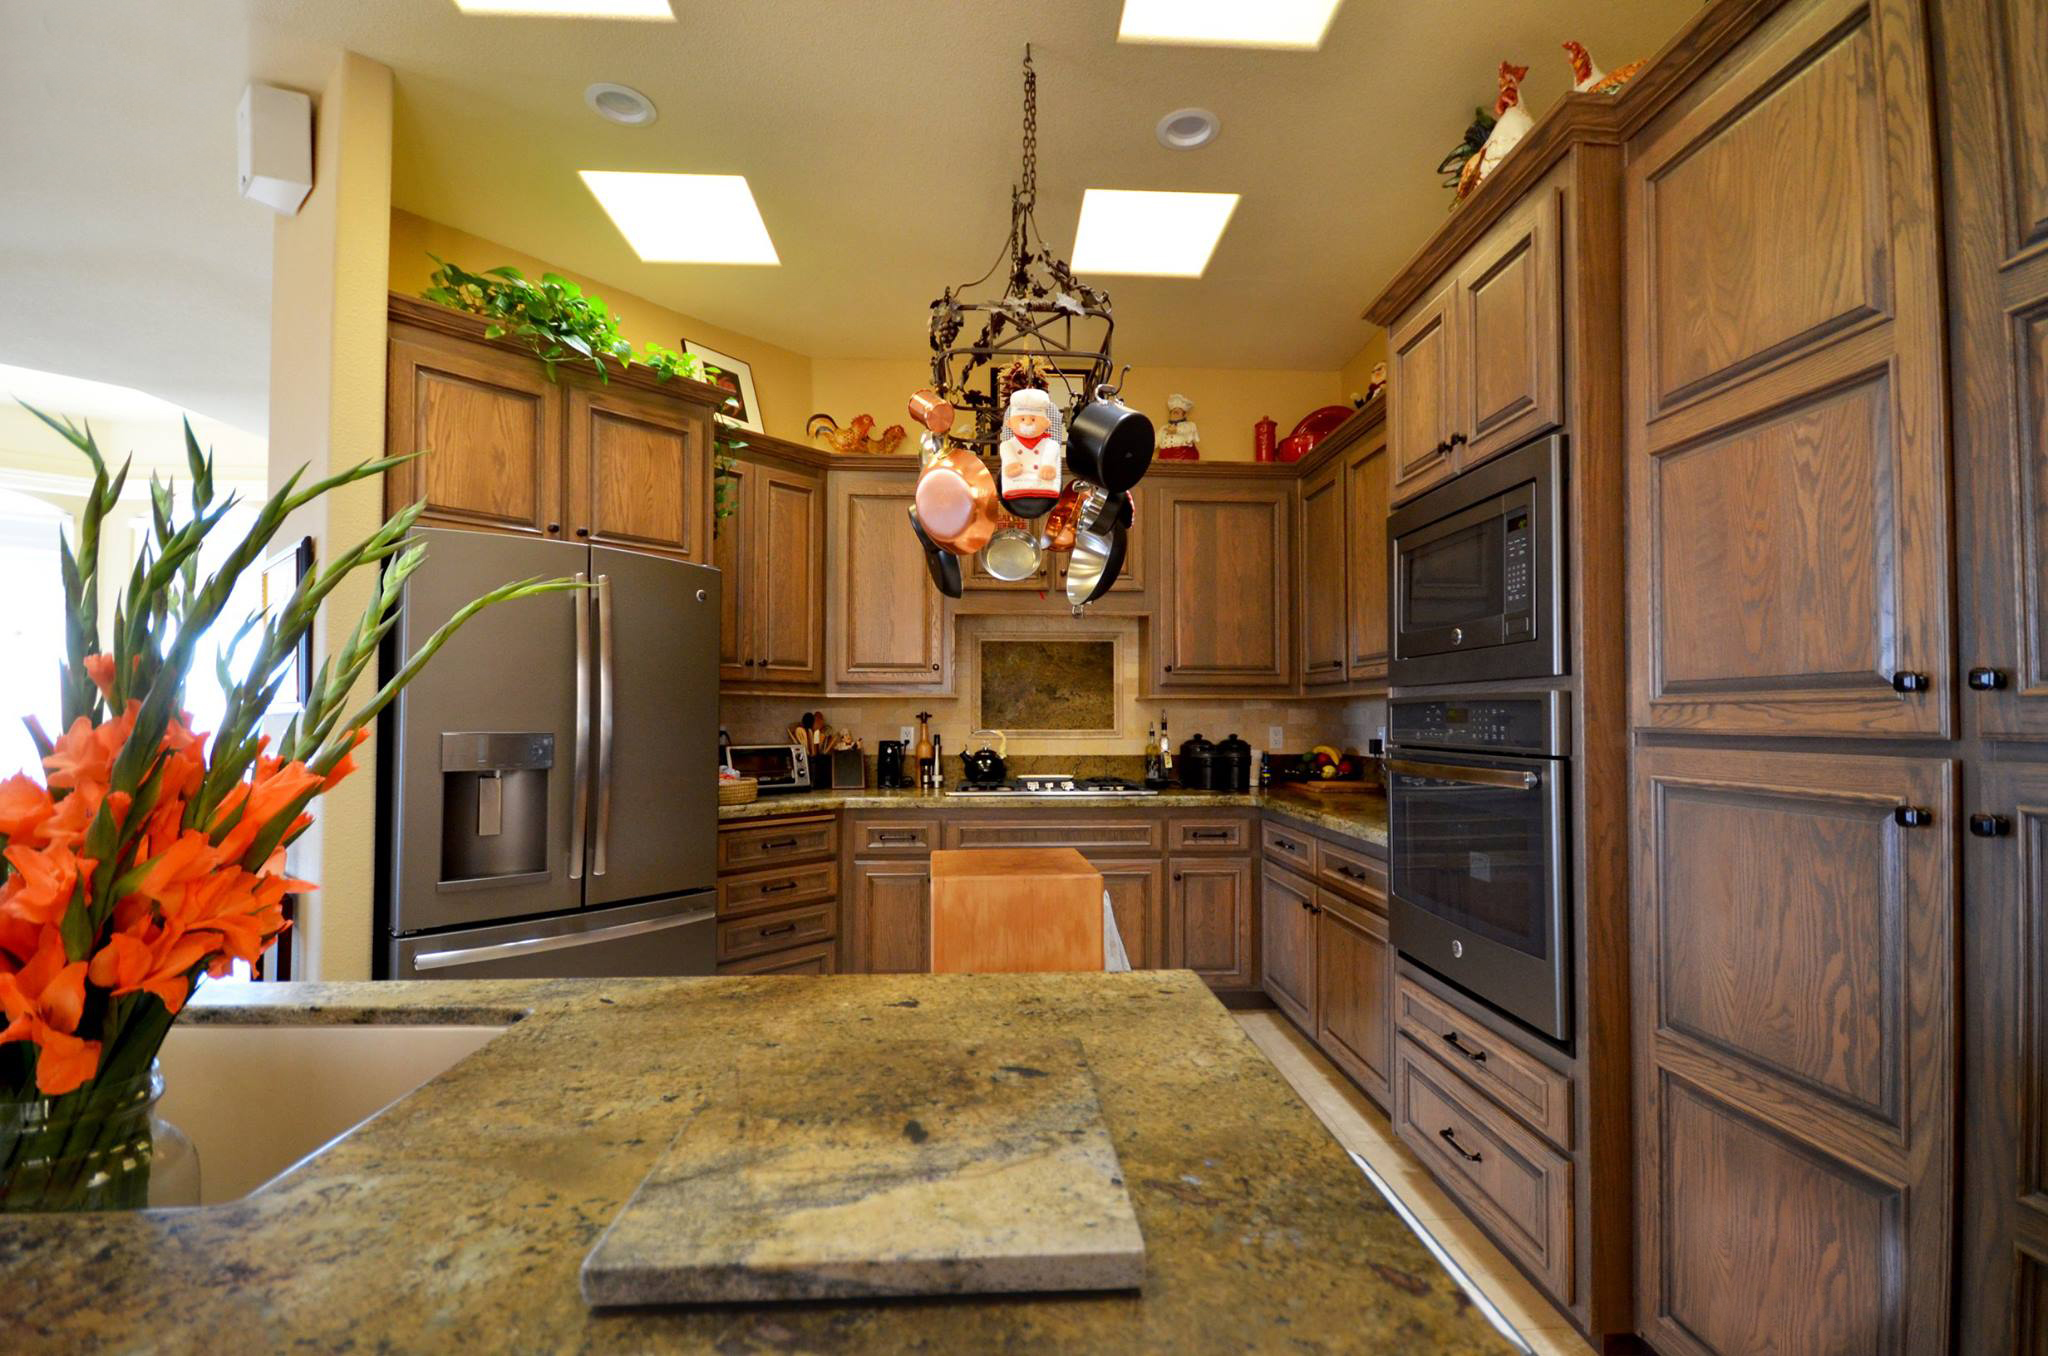 kitchen cabinet reface white storage refacing new life bath reface1 jpg remodeling services bathroom custom cabinets